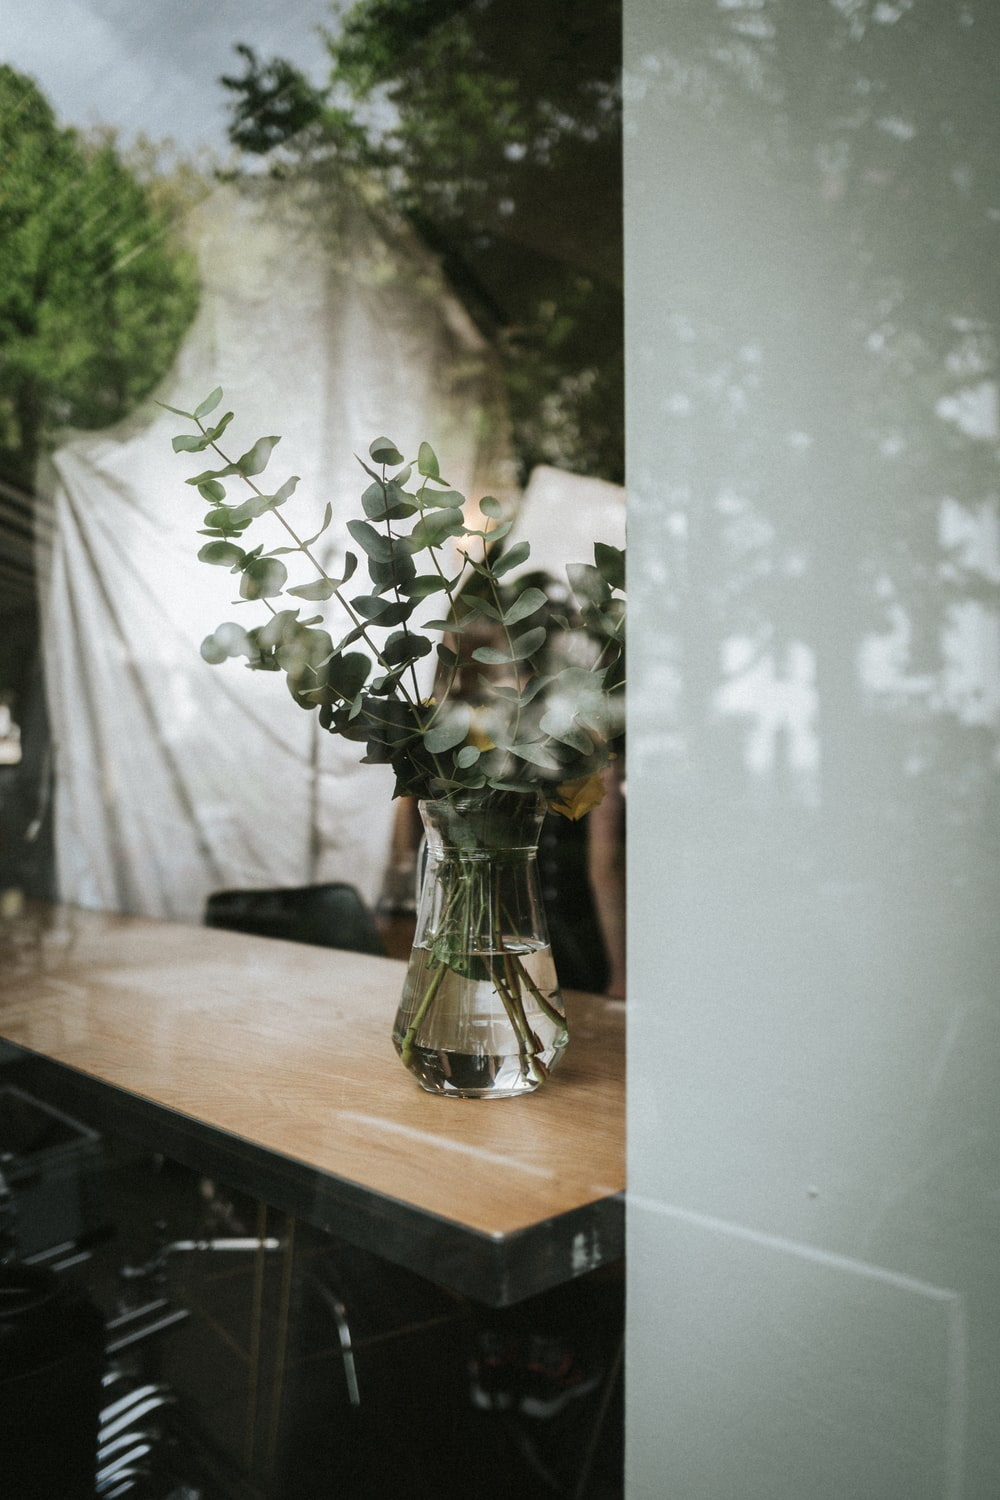 green leaf plant in clear glass vase on wooden surface